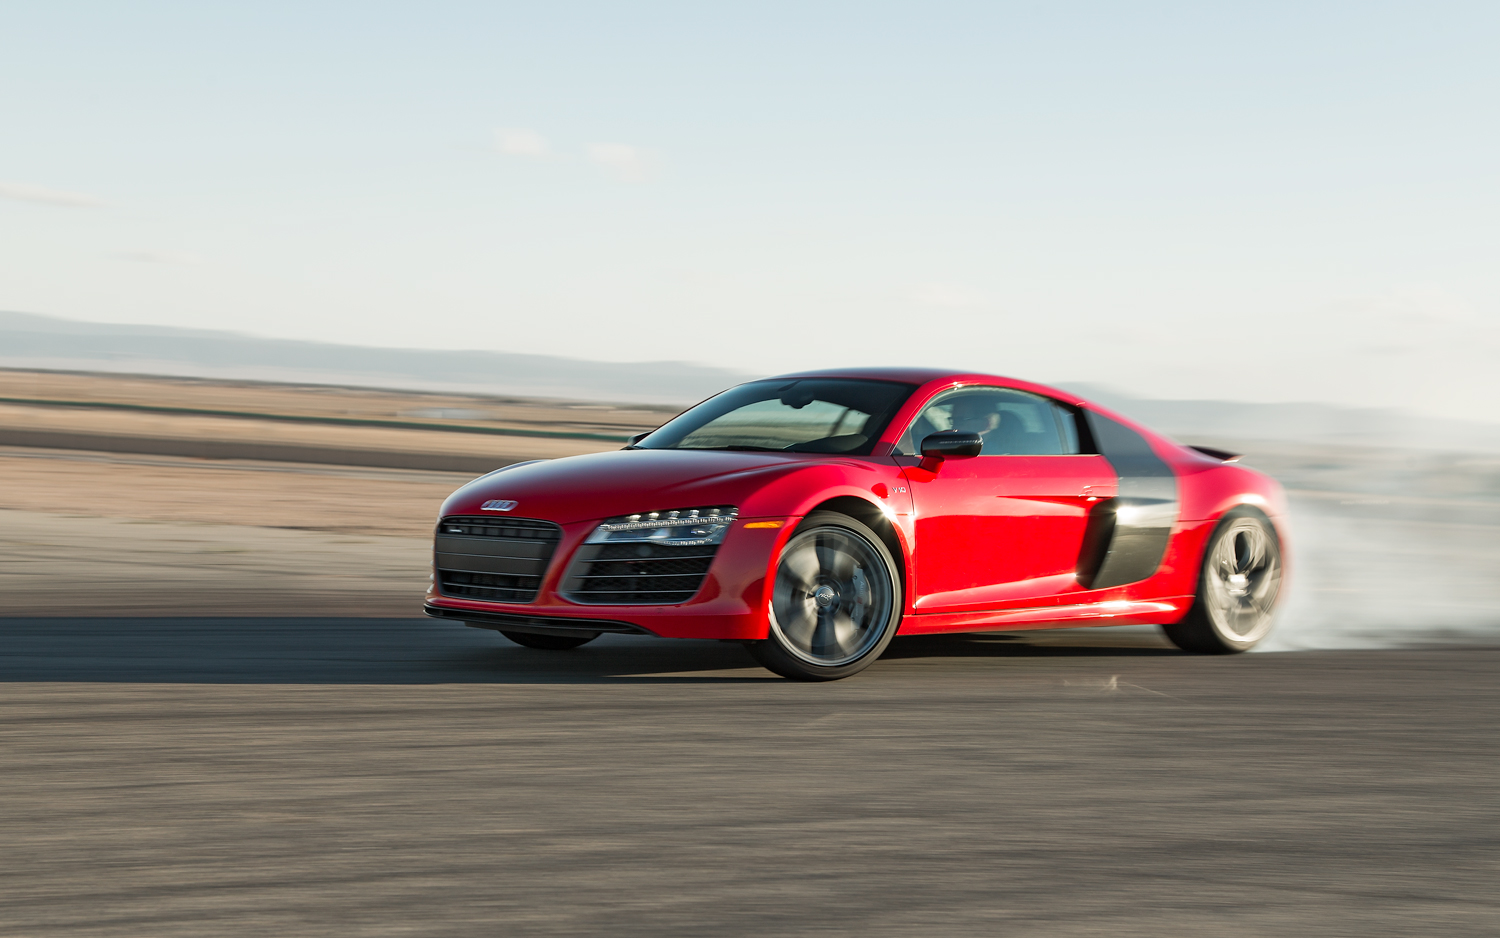 2014 Audi R8 V10 Plus on World's Fastest Car Show: What's